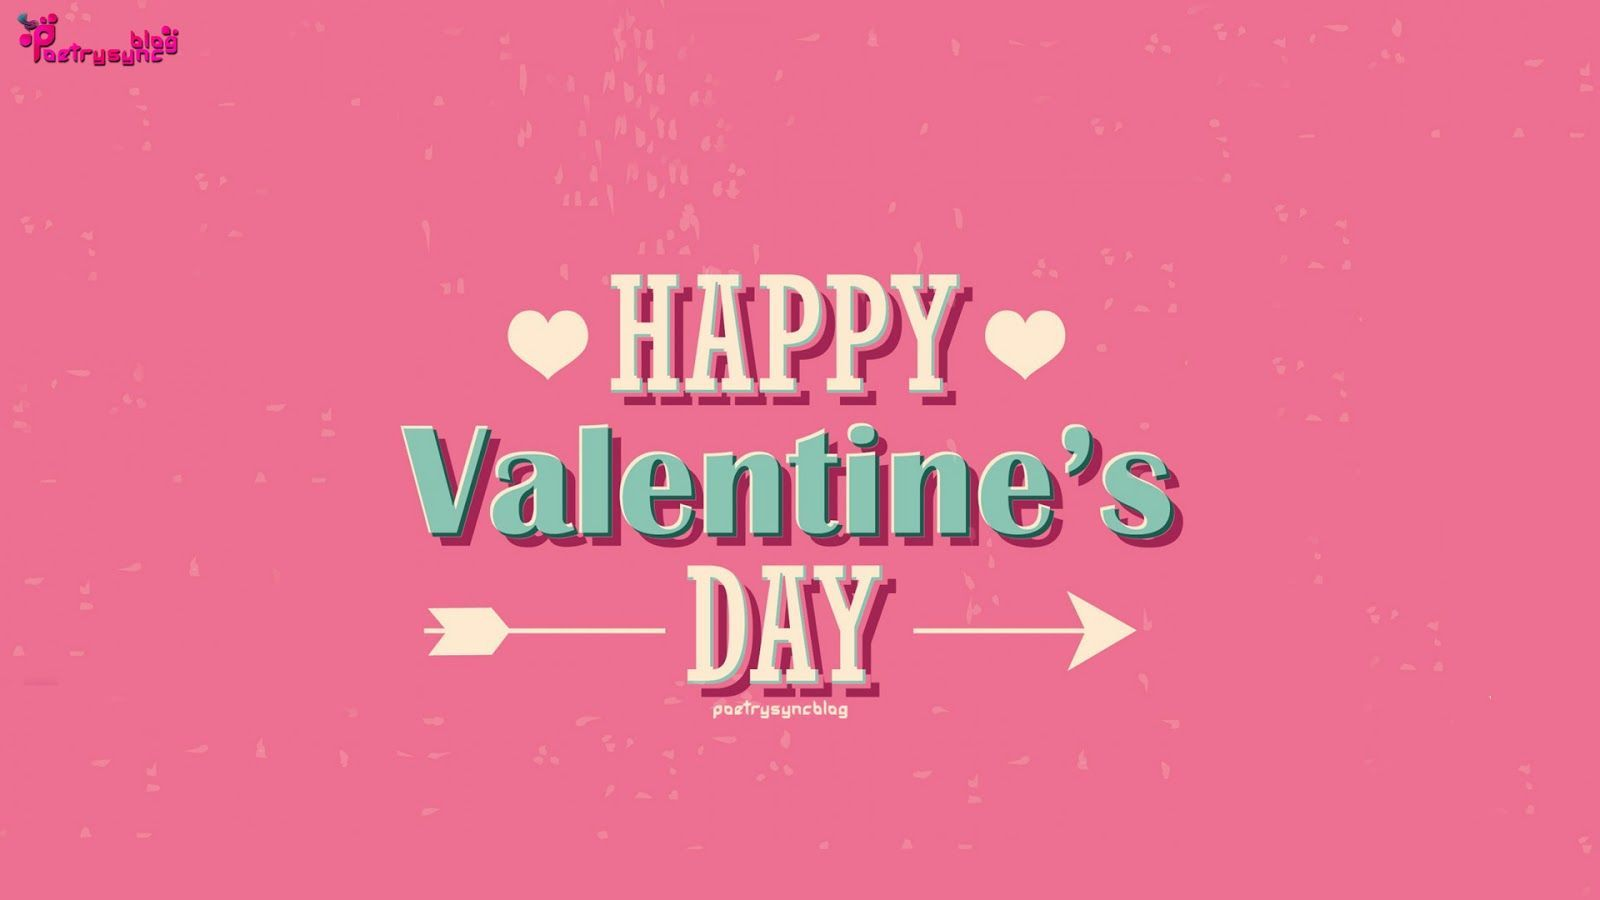 Cute Valentines Day Wallpapers   Top Cute Valentines Day 1600x900